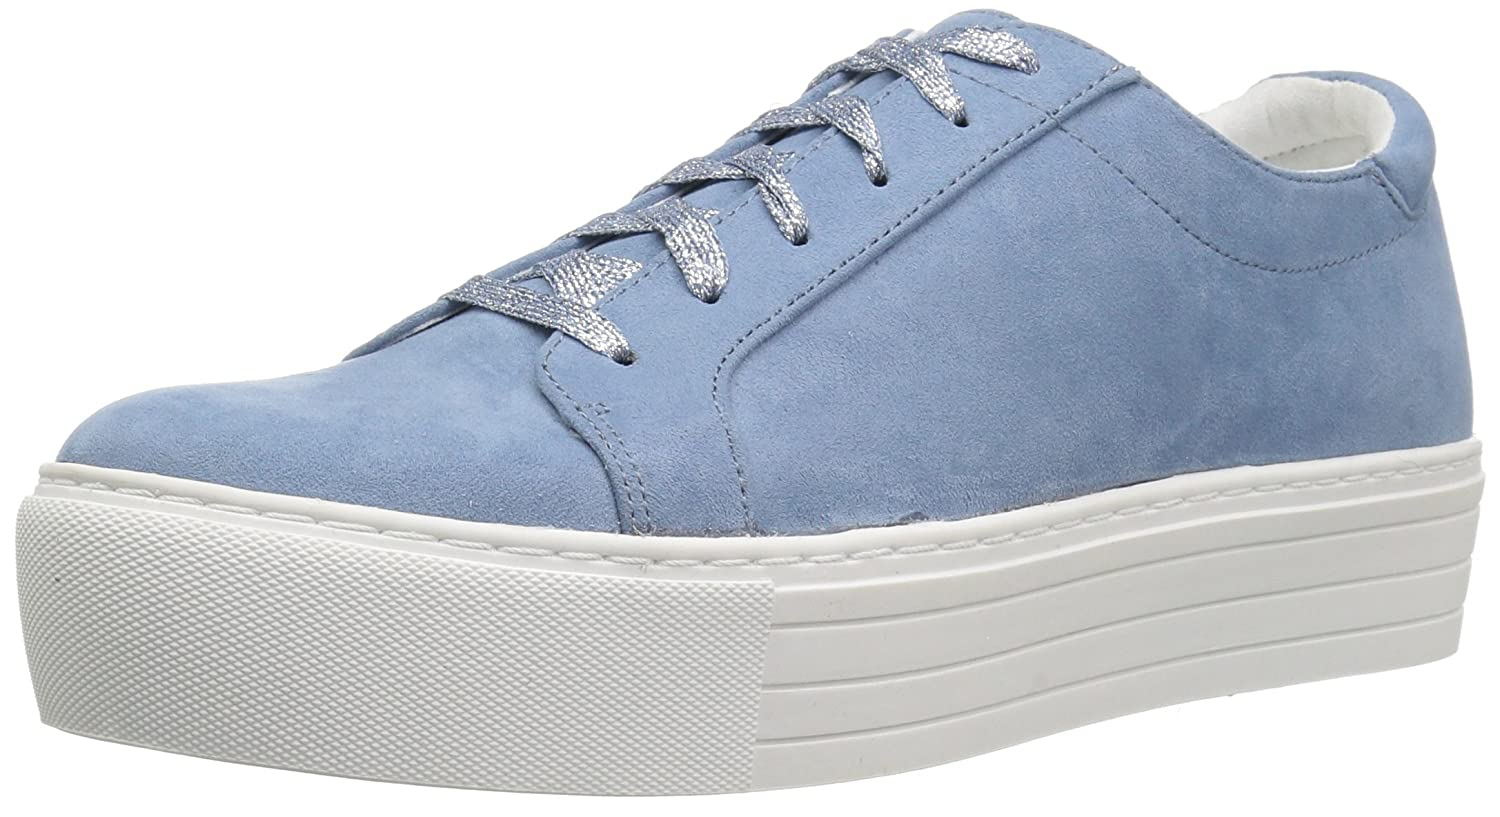 Kenneth Cole REACTION Women's Cheer-y Platform Lace up Sneaker B076FNSWJD 5 B(M) US|Storm